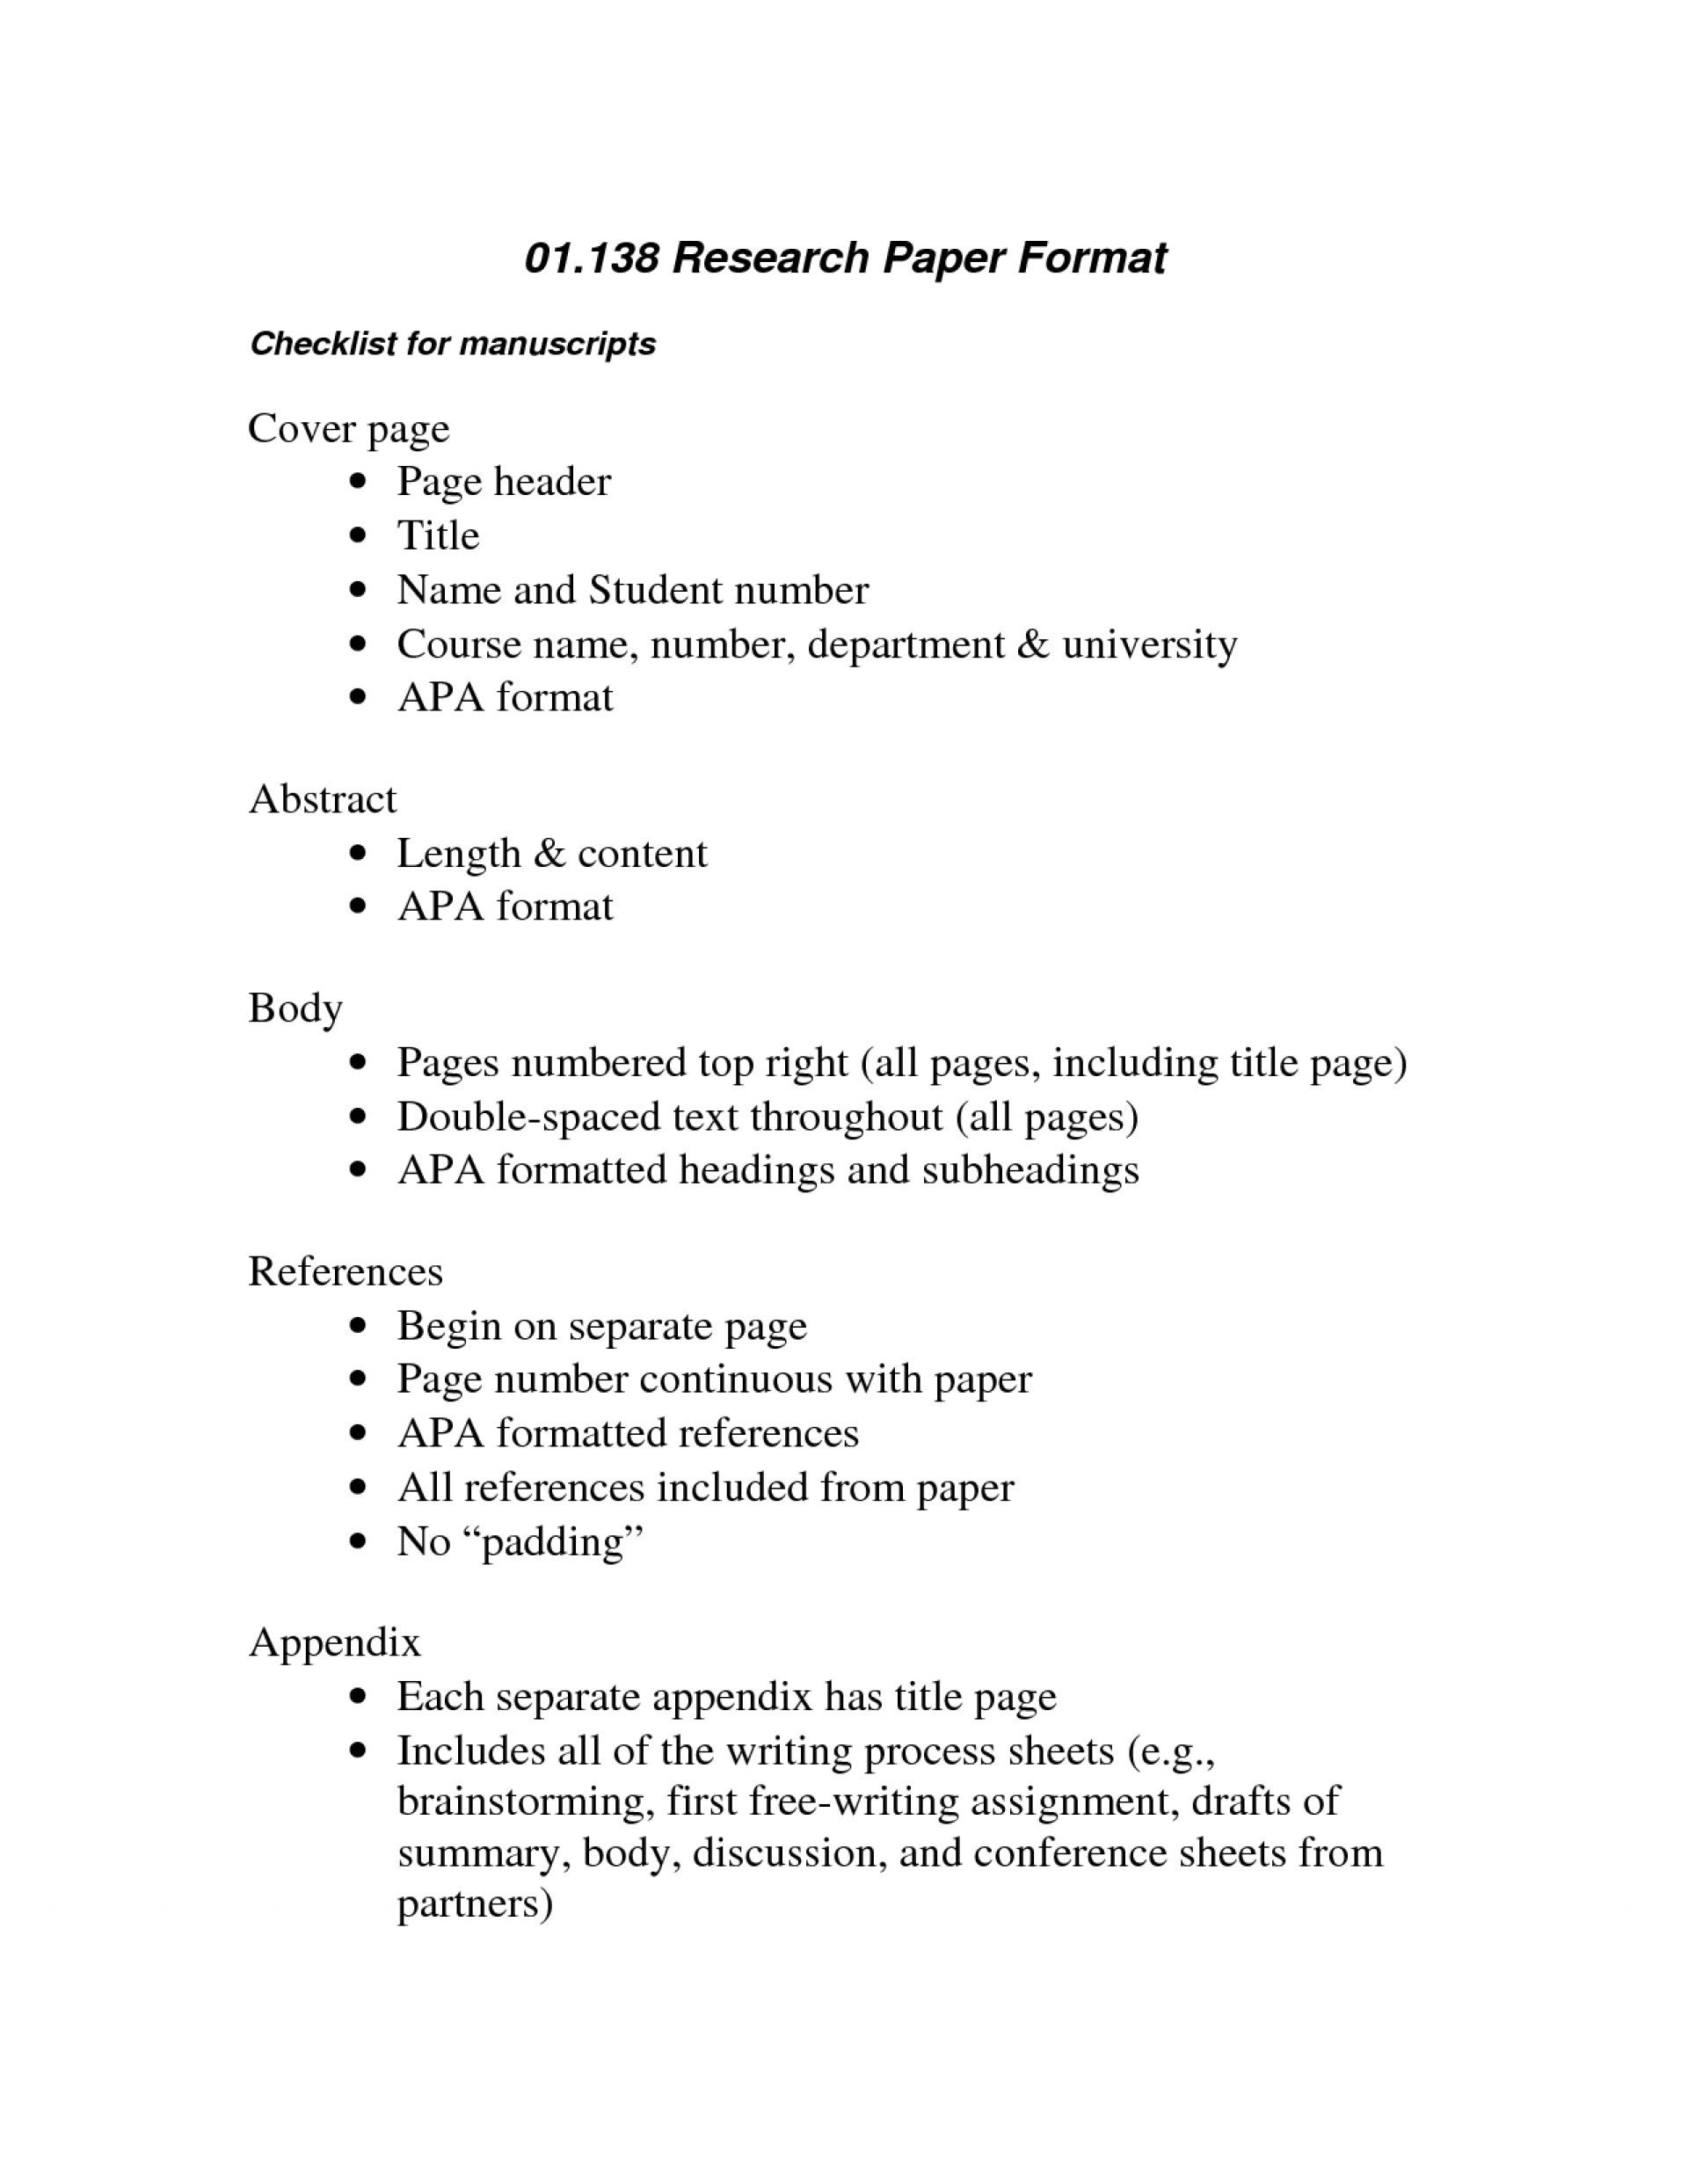 002 Apa Research Paper Format Outstanding Purdue Owl Example 2015 1920